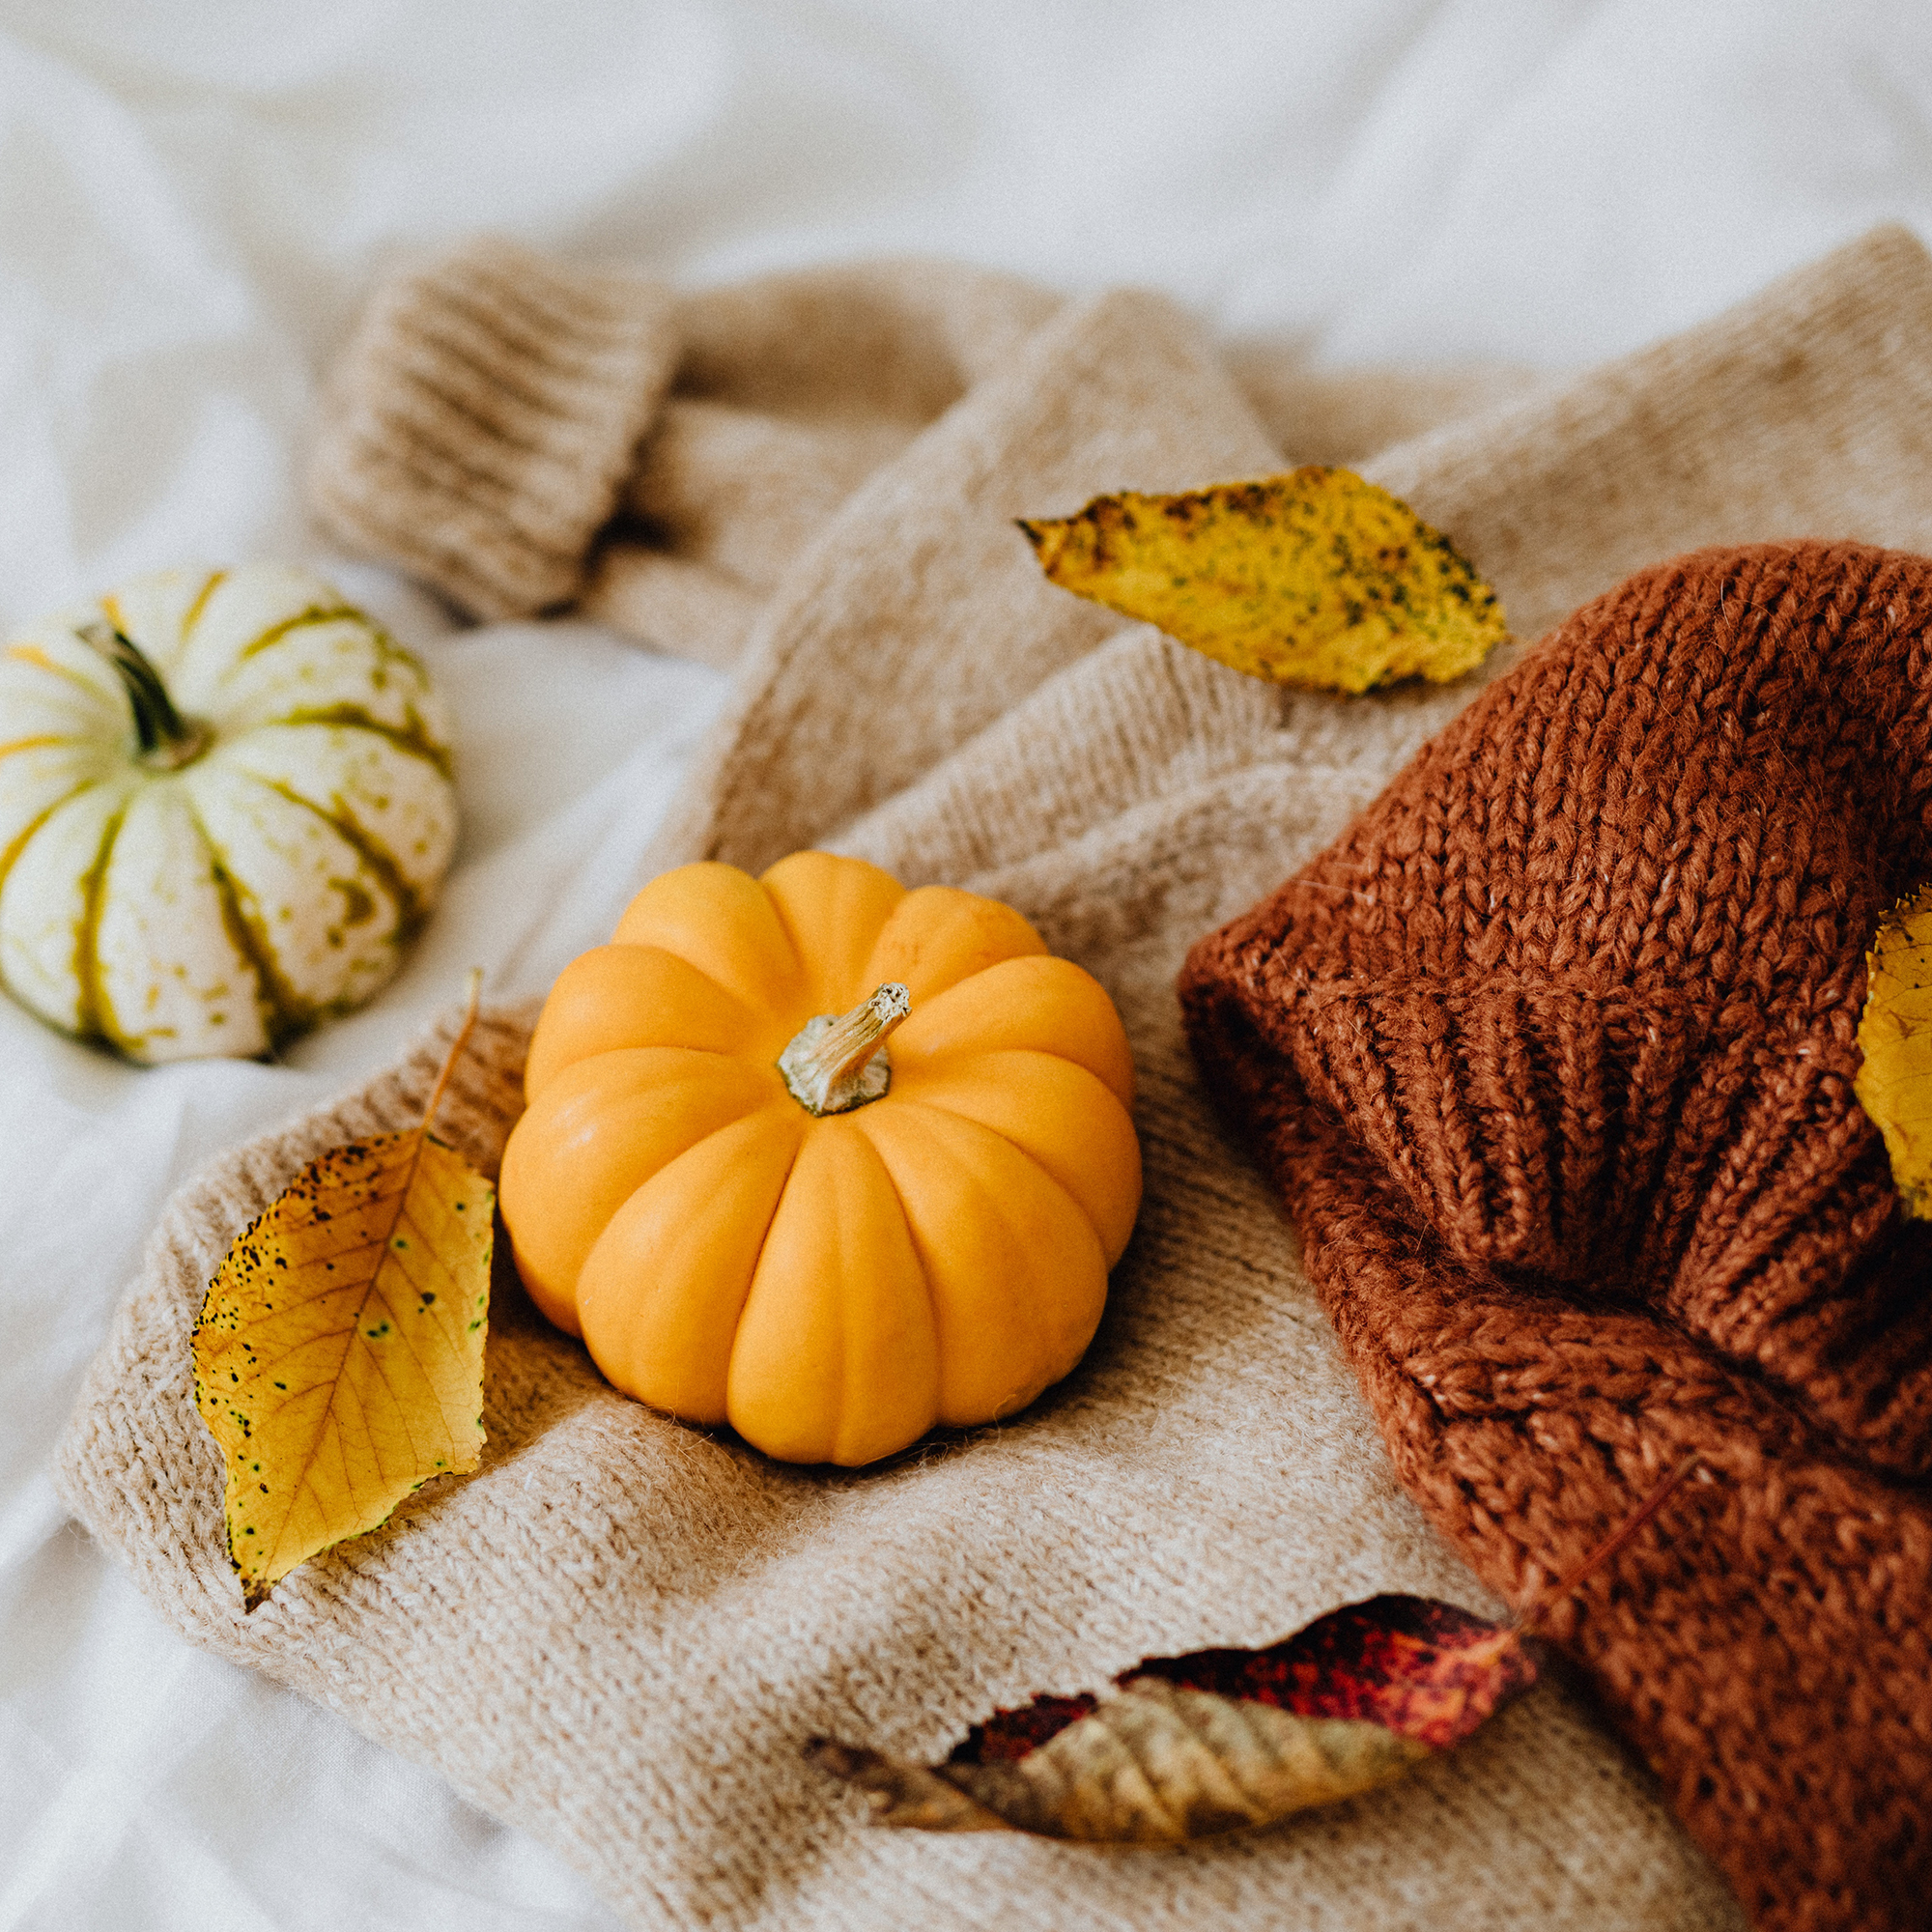 fall pumpkins and leaves on a blanket